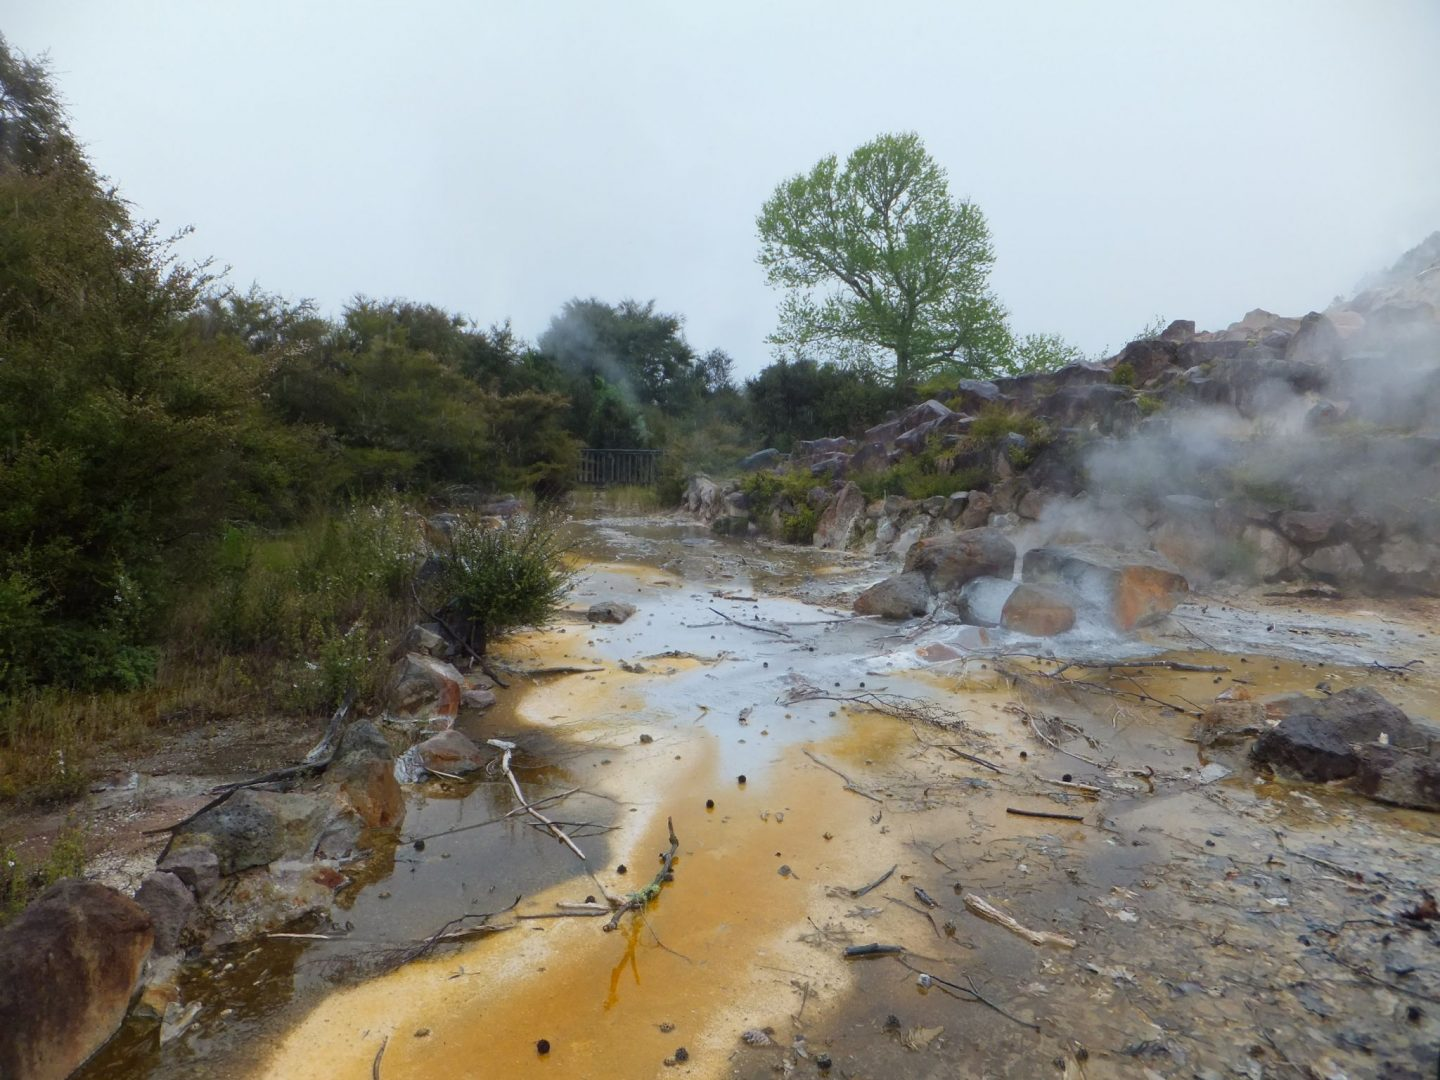 Maori Culture and Geothermal activity in Rotorua